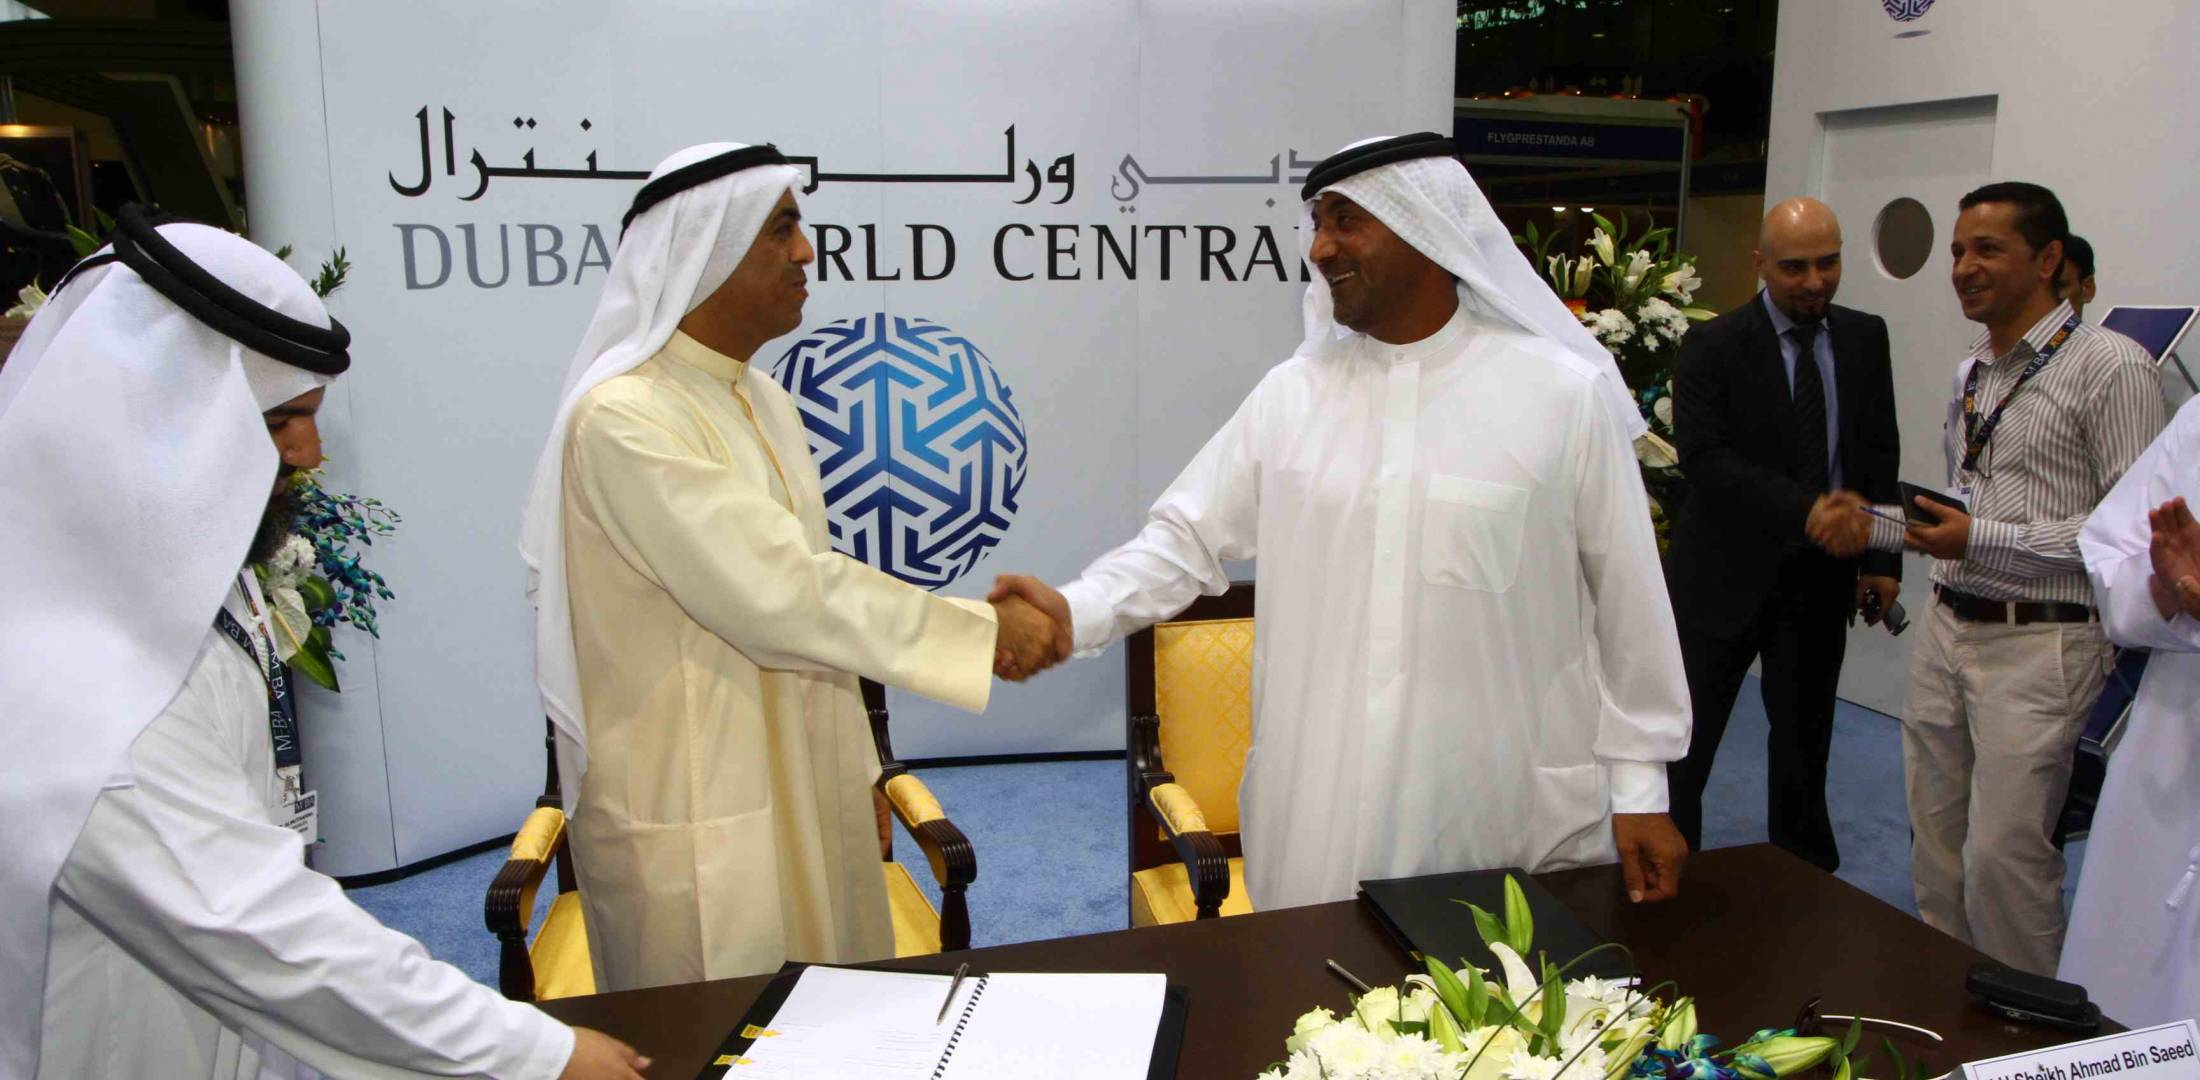 HH Sheikh Ahmed bin Saeed Al Maktoum (r.) and Omar Abdulla Al Futtaim sign an...